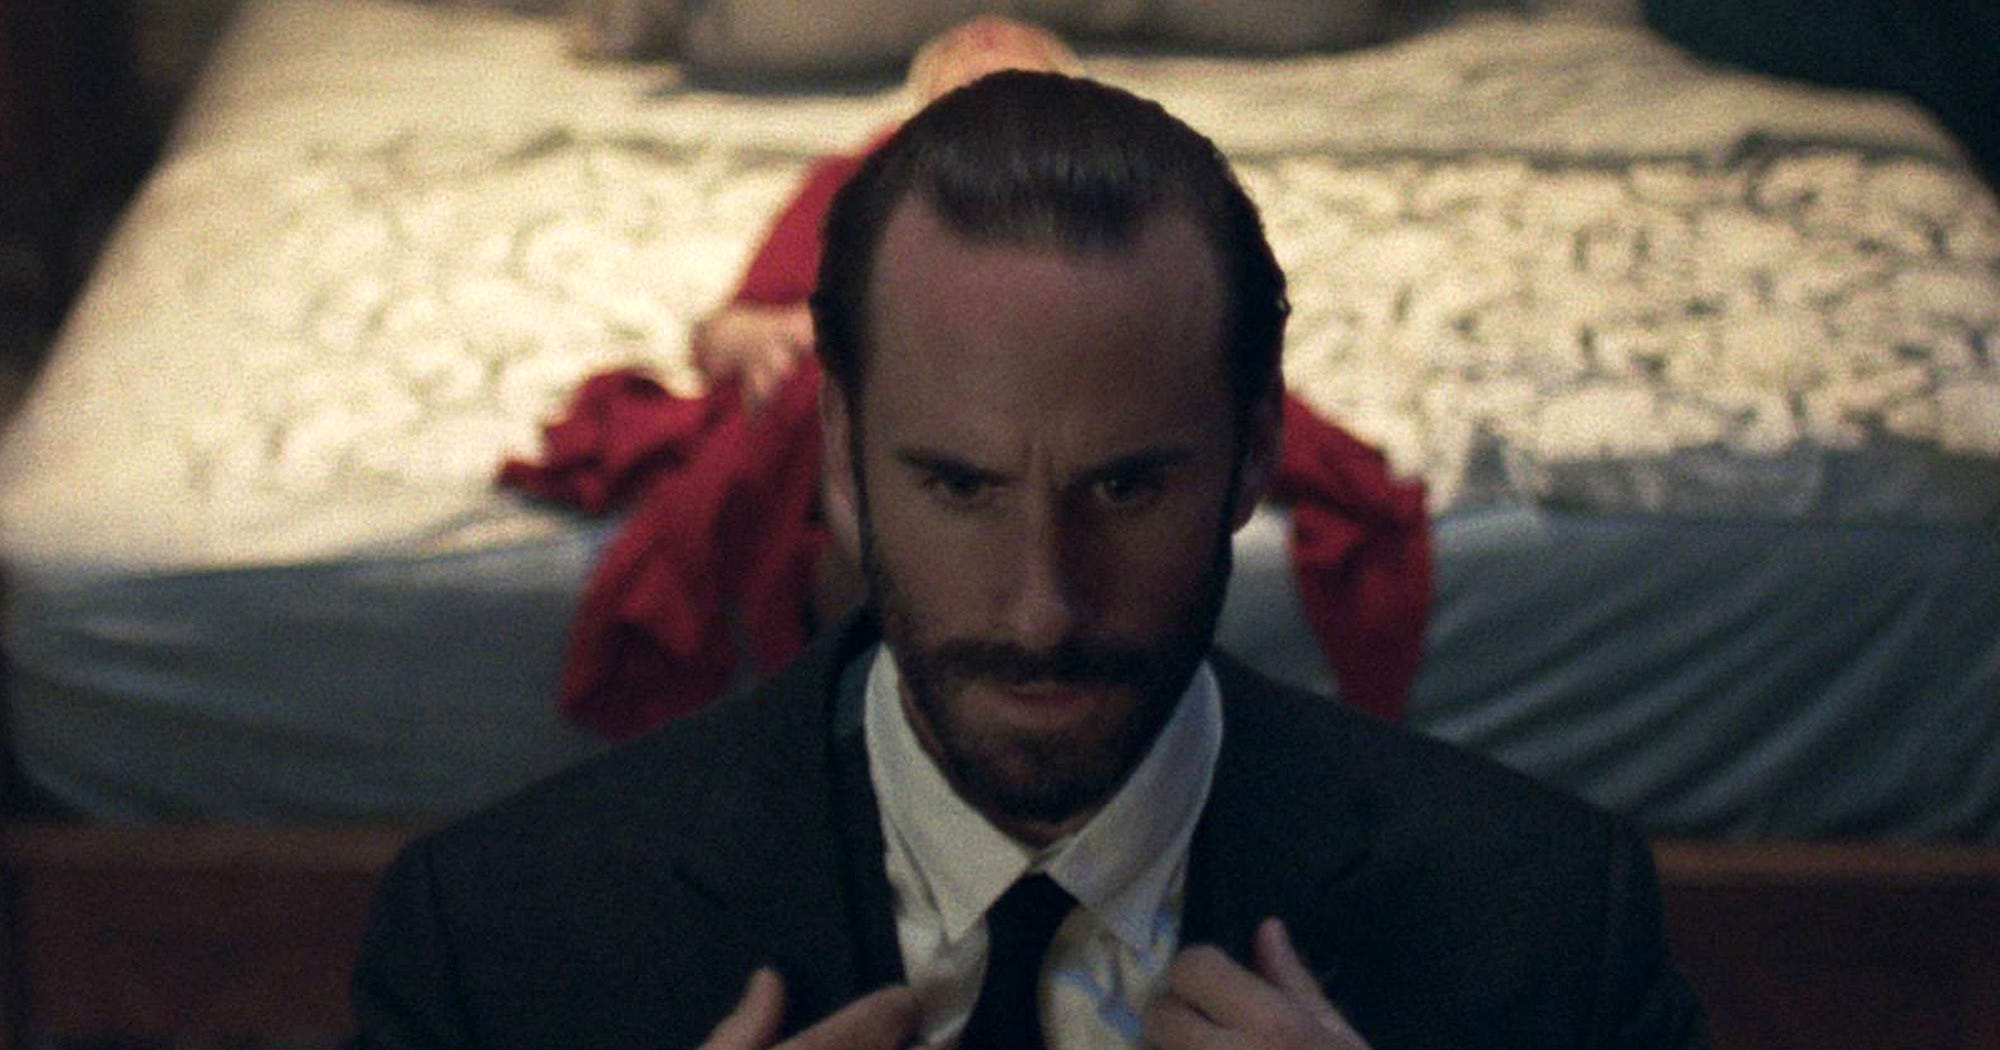 Entry6 Joseph Fiennes On The Handmaids Tale Sexual Violence